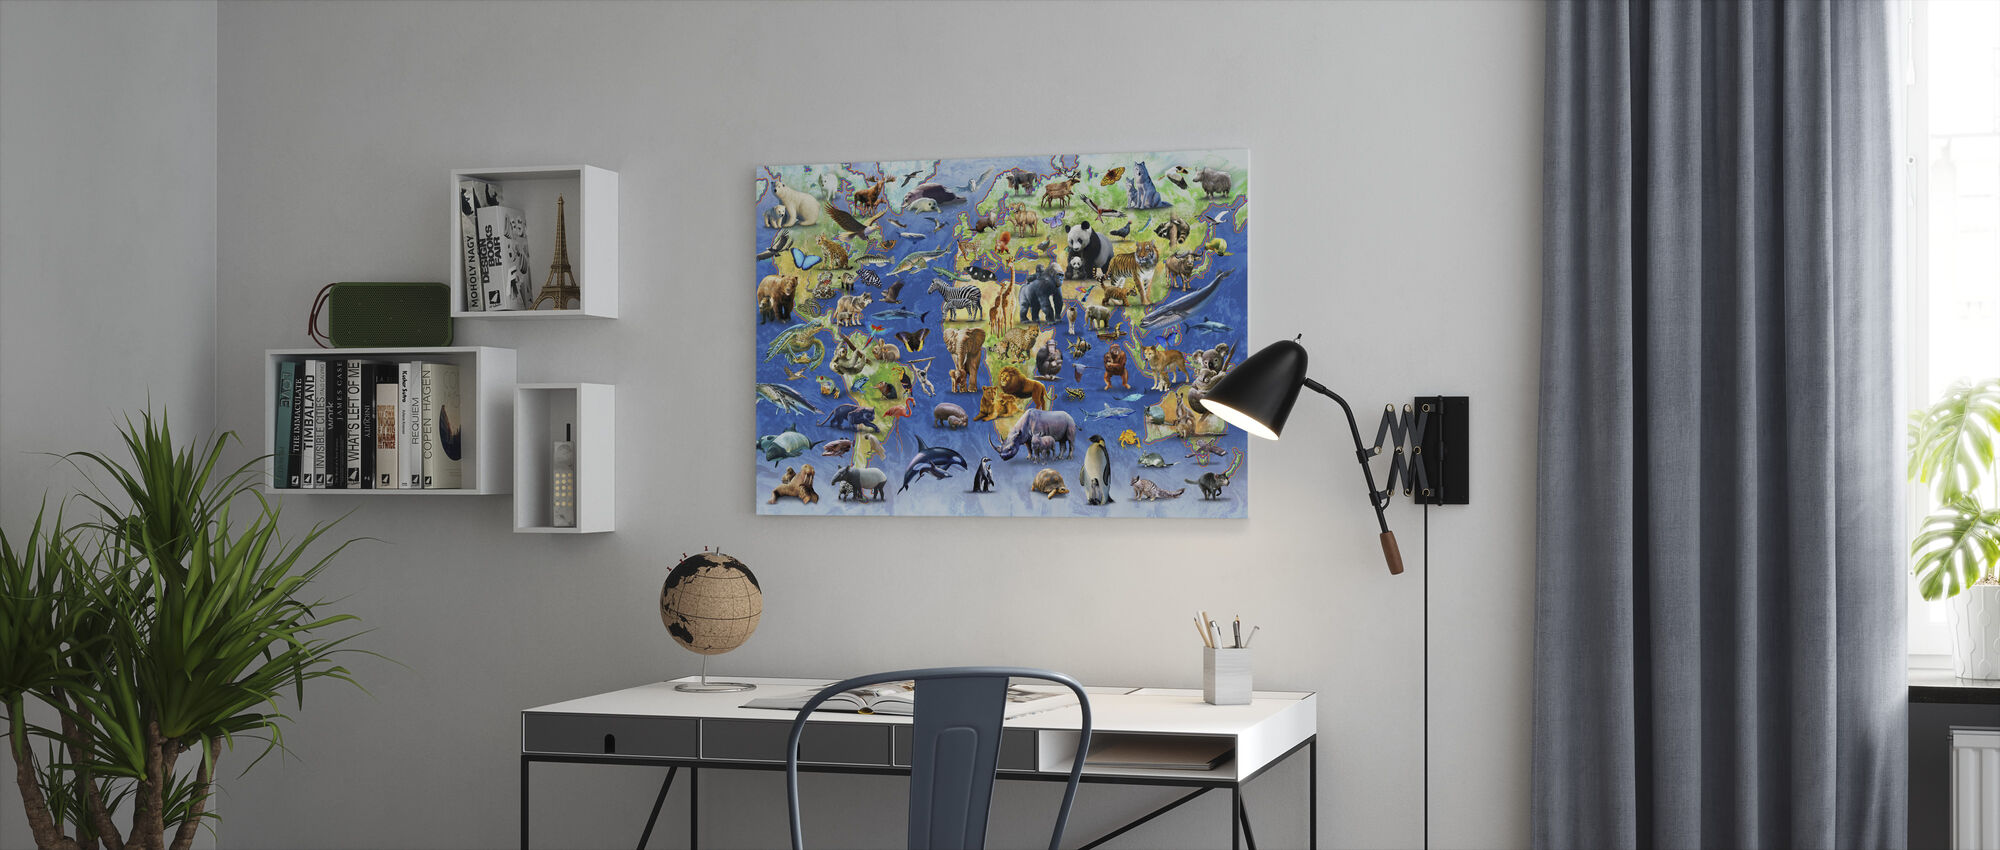 One Hundred Endangered Species - Canvas print - Office